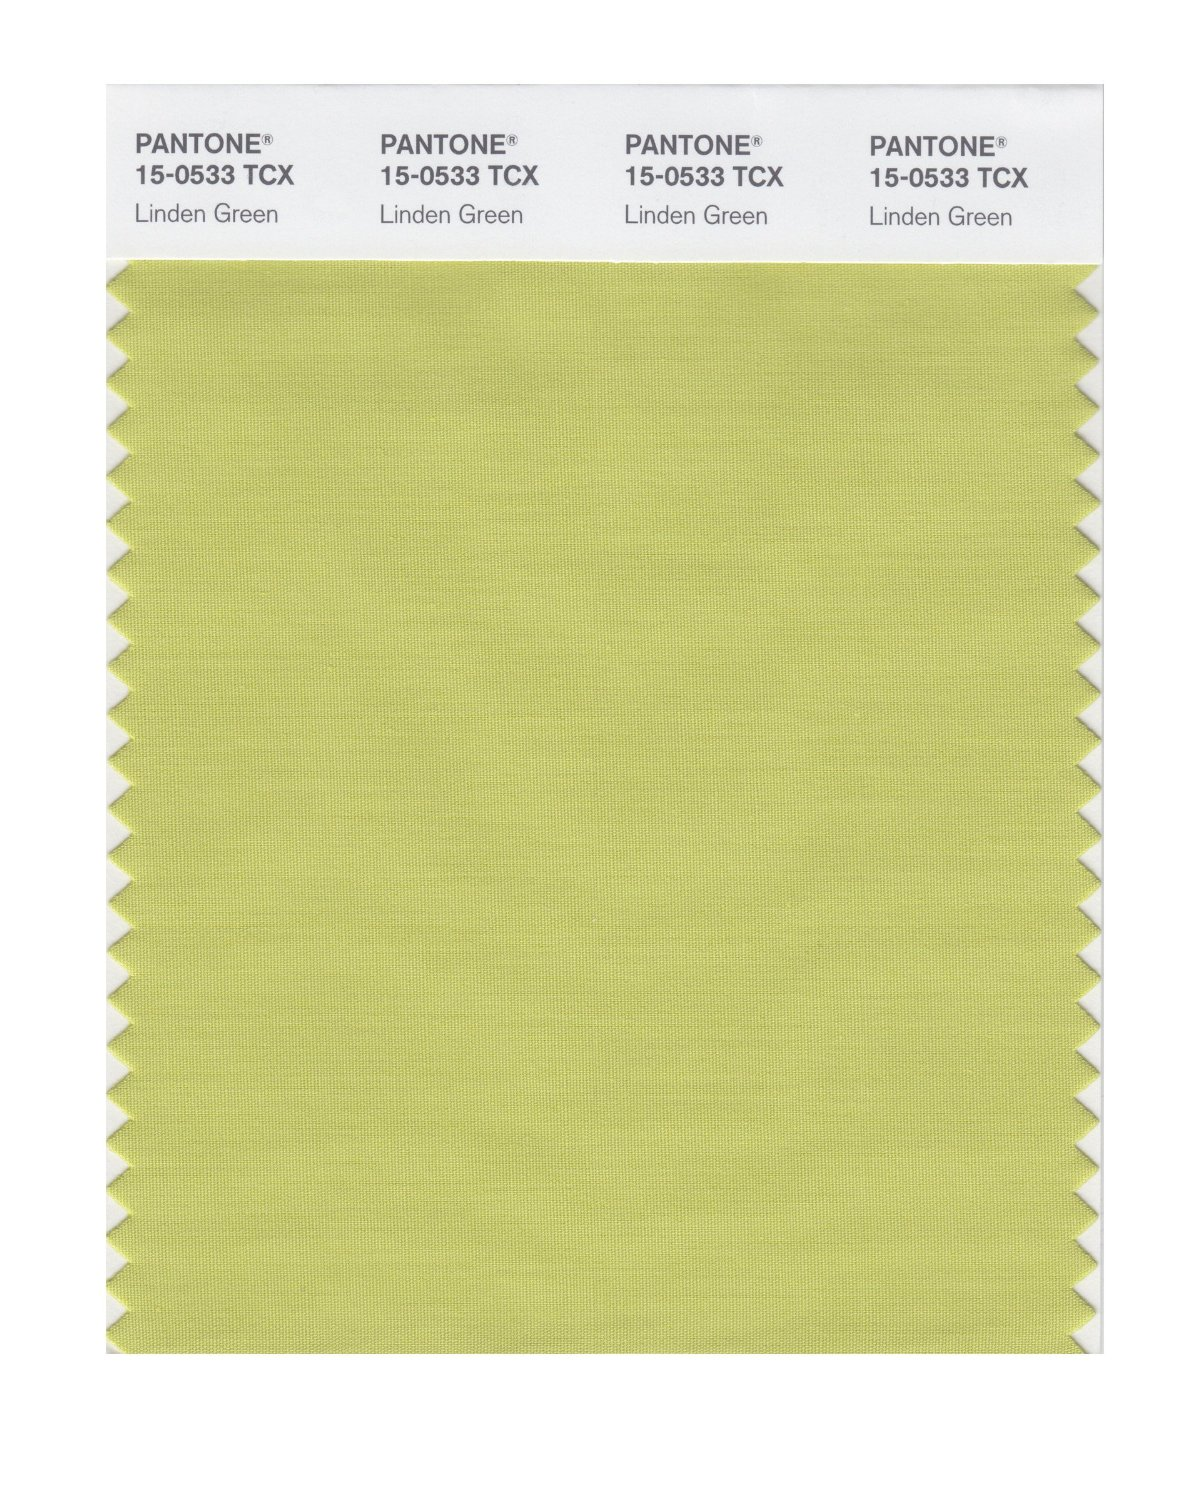 Pantone Smart Swatch 15-0533 Linden Green